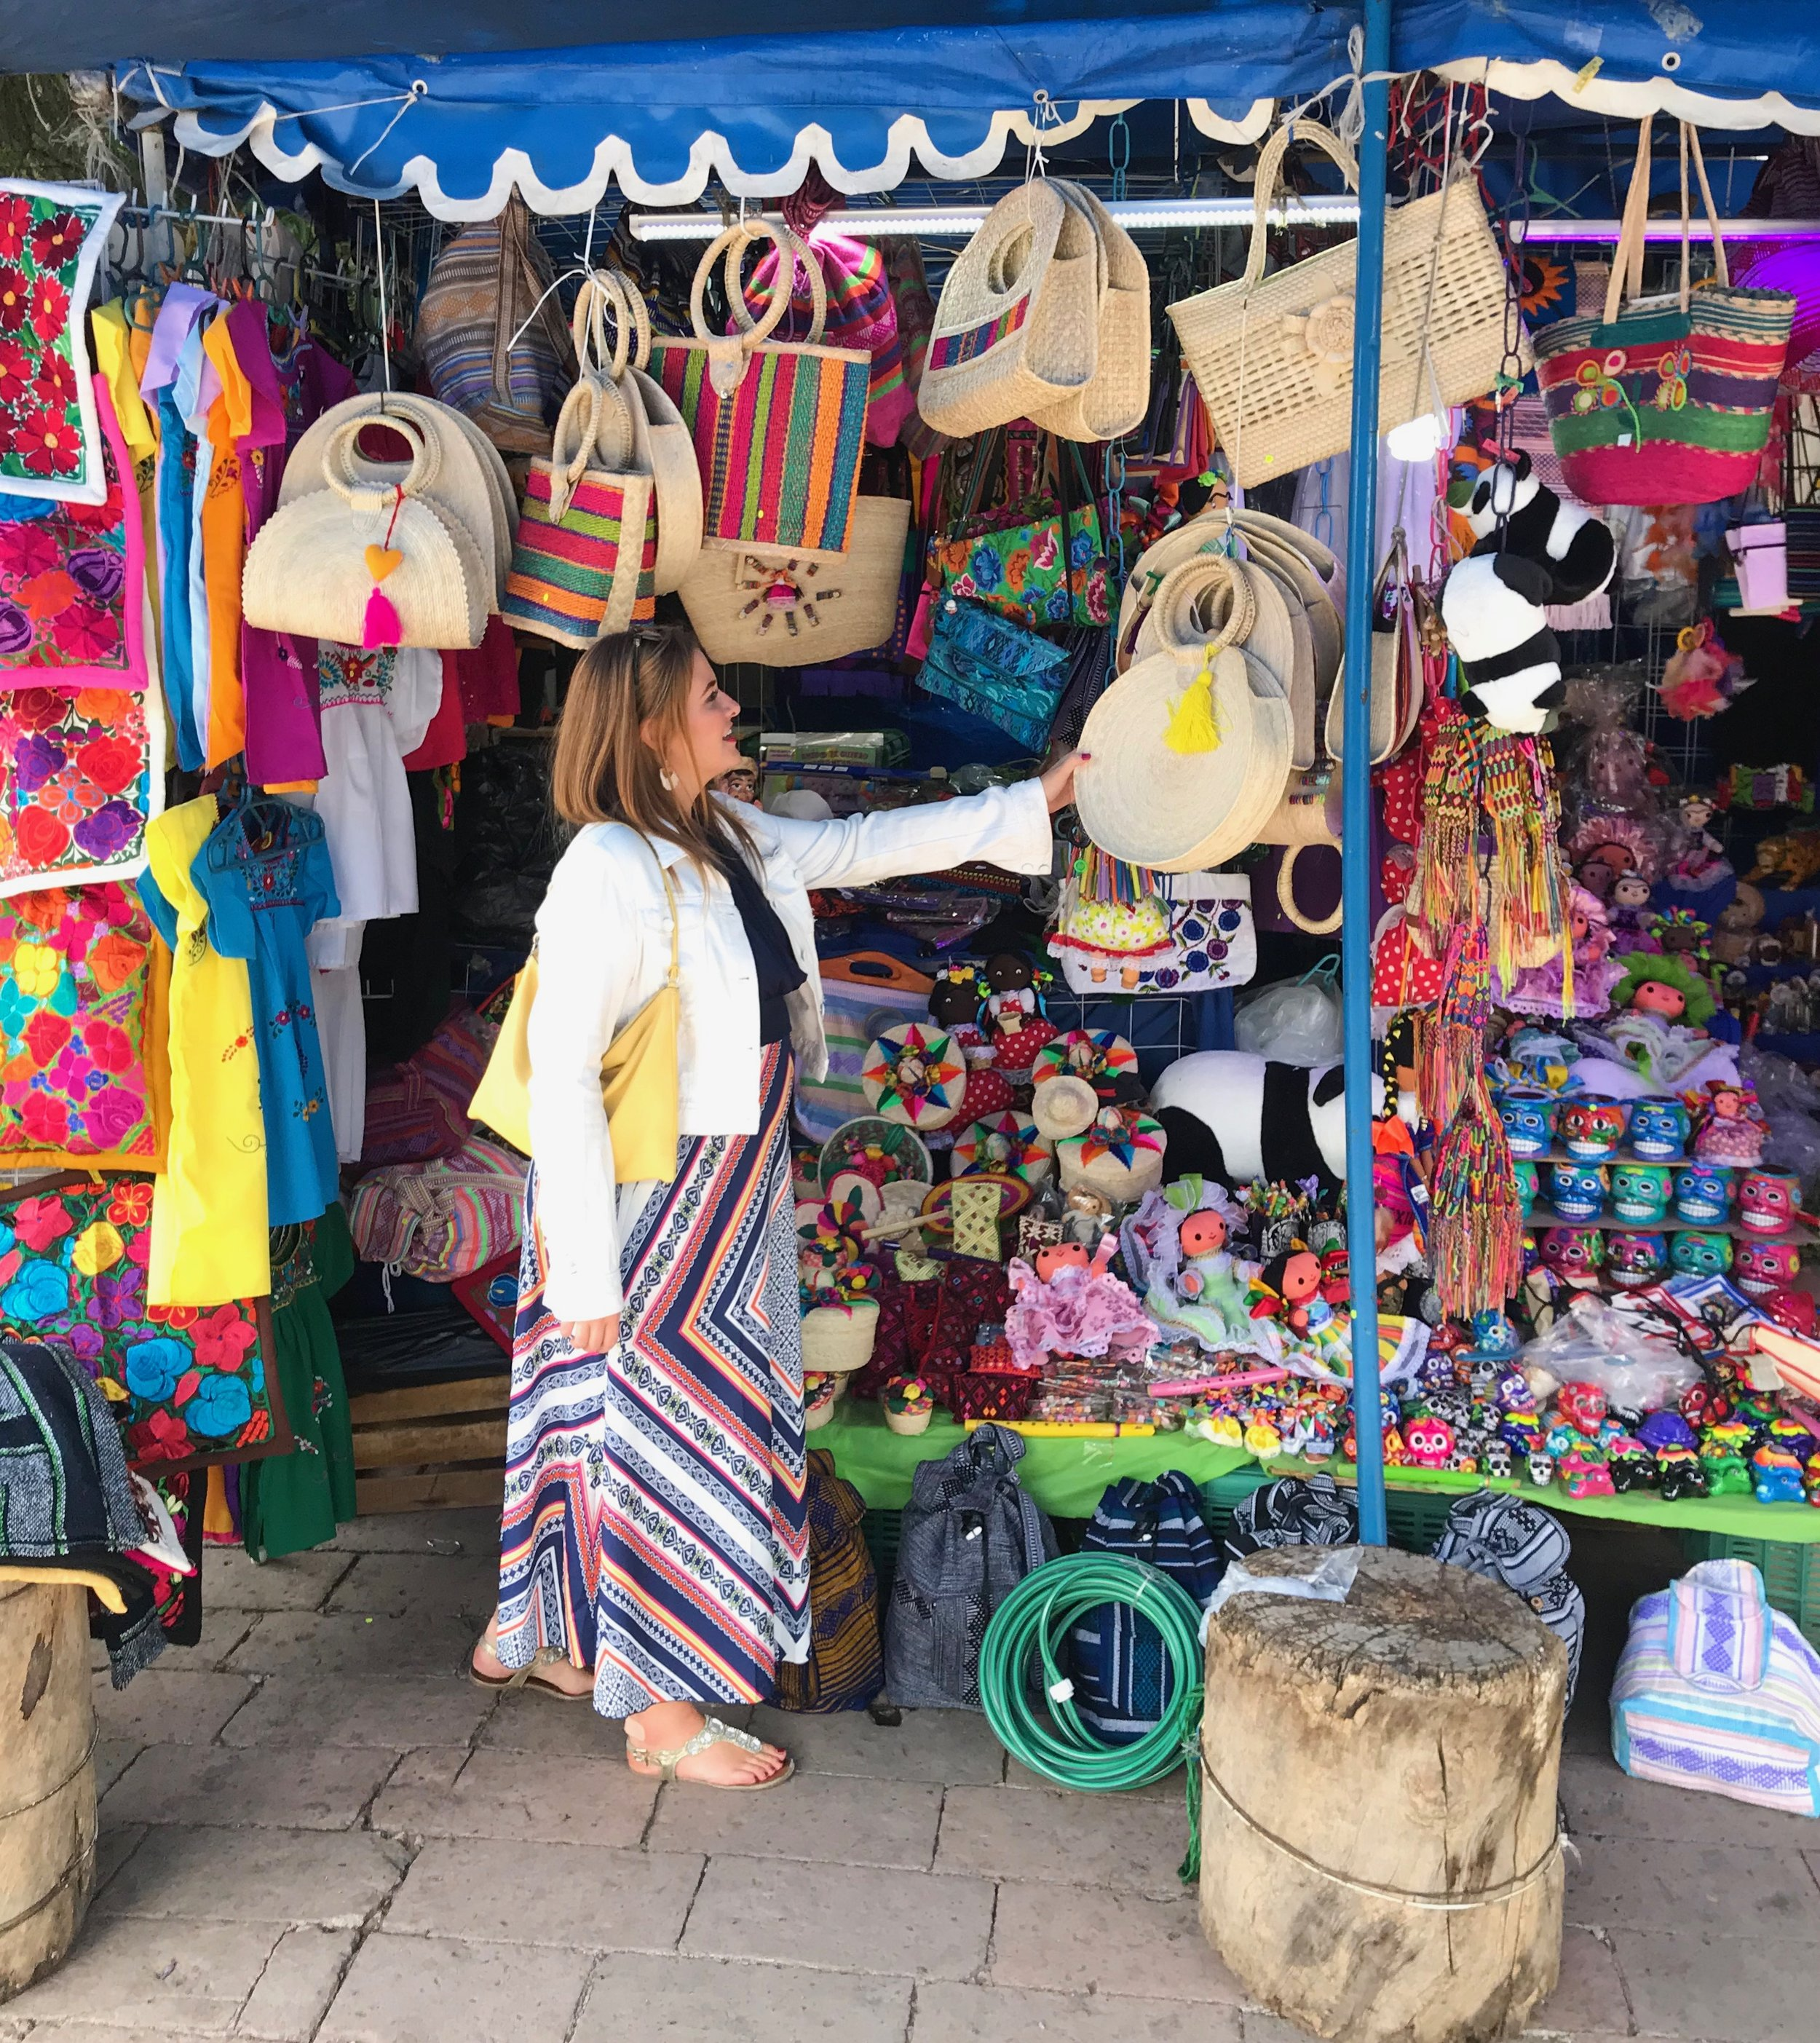 Mexico City Travel - Things to do in Downtown Centro